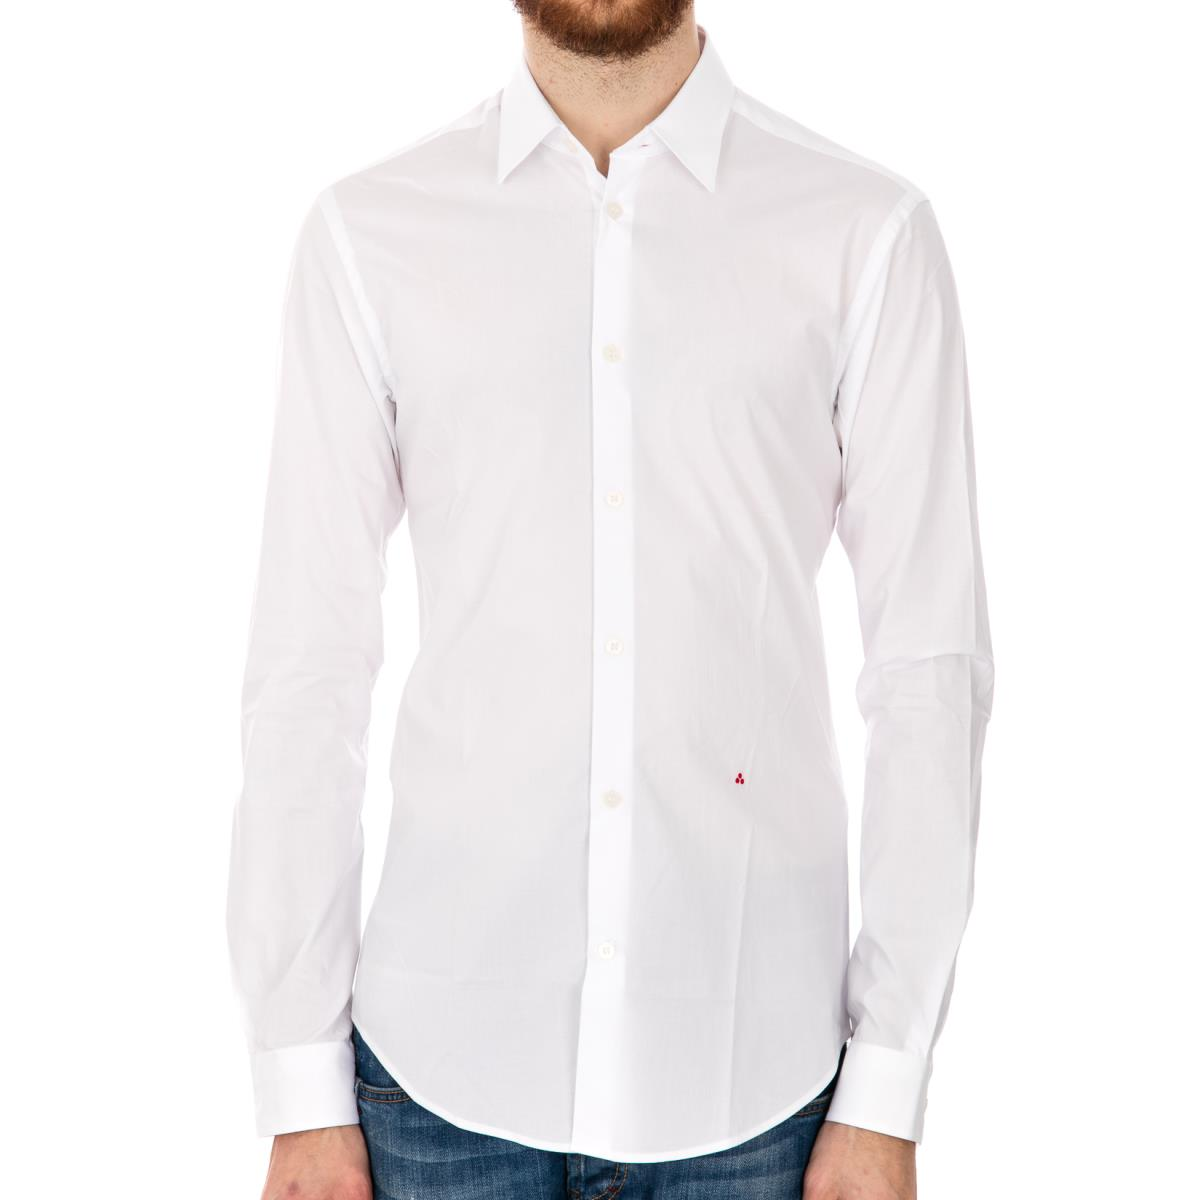 check out 8b5a2 f150d Peuterey Camicia